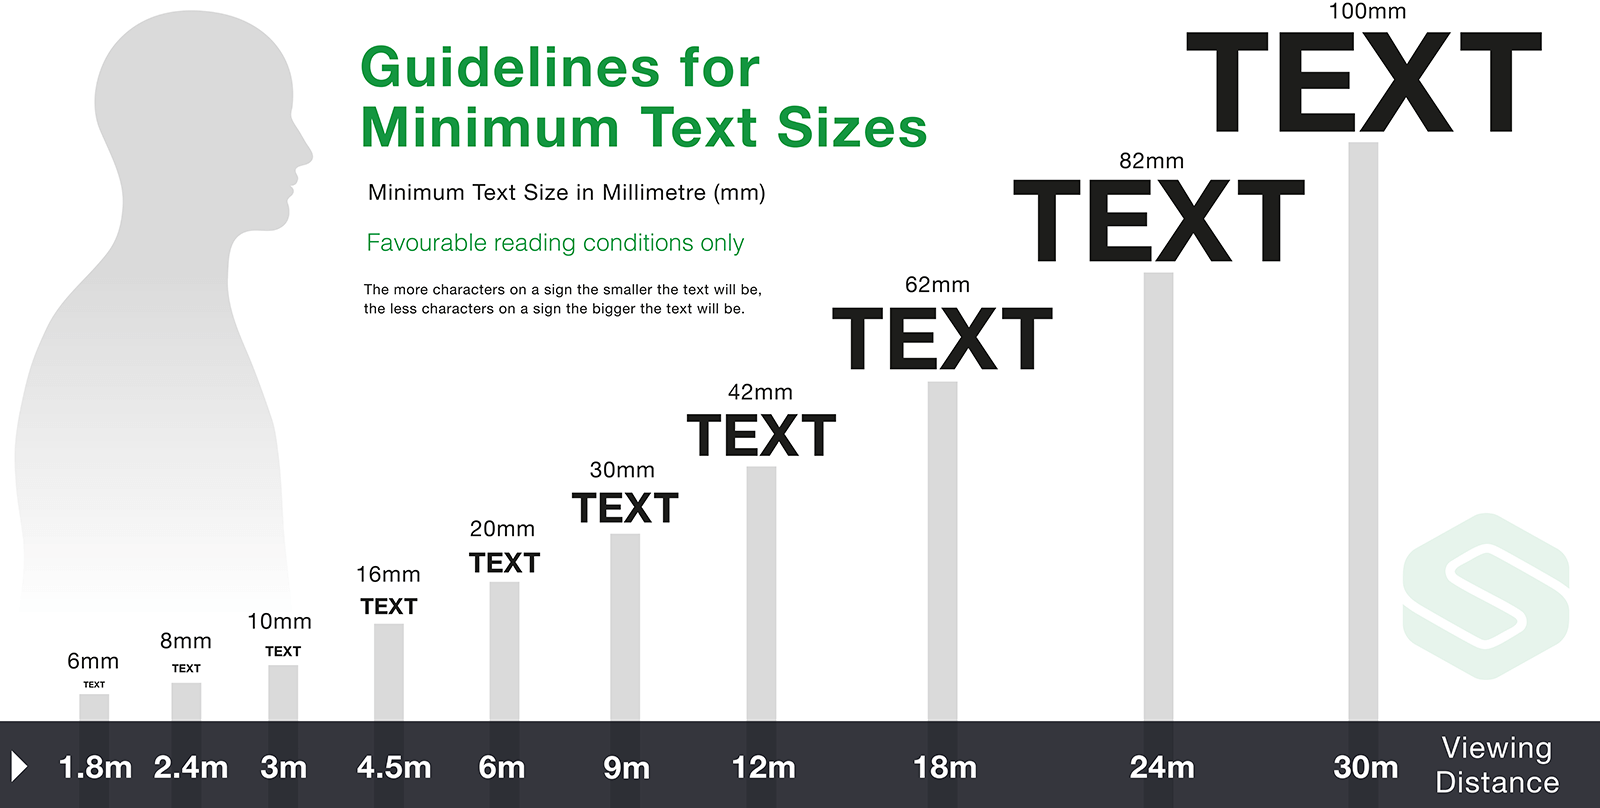 Minimum Text Sizes